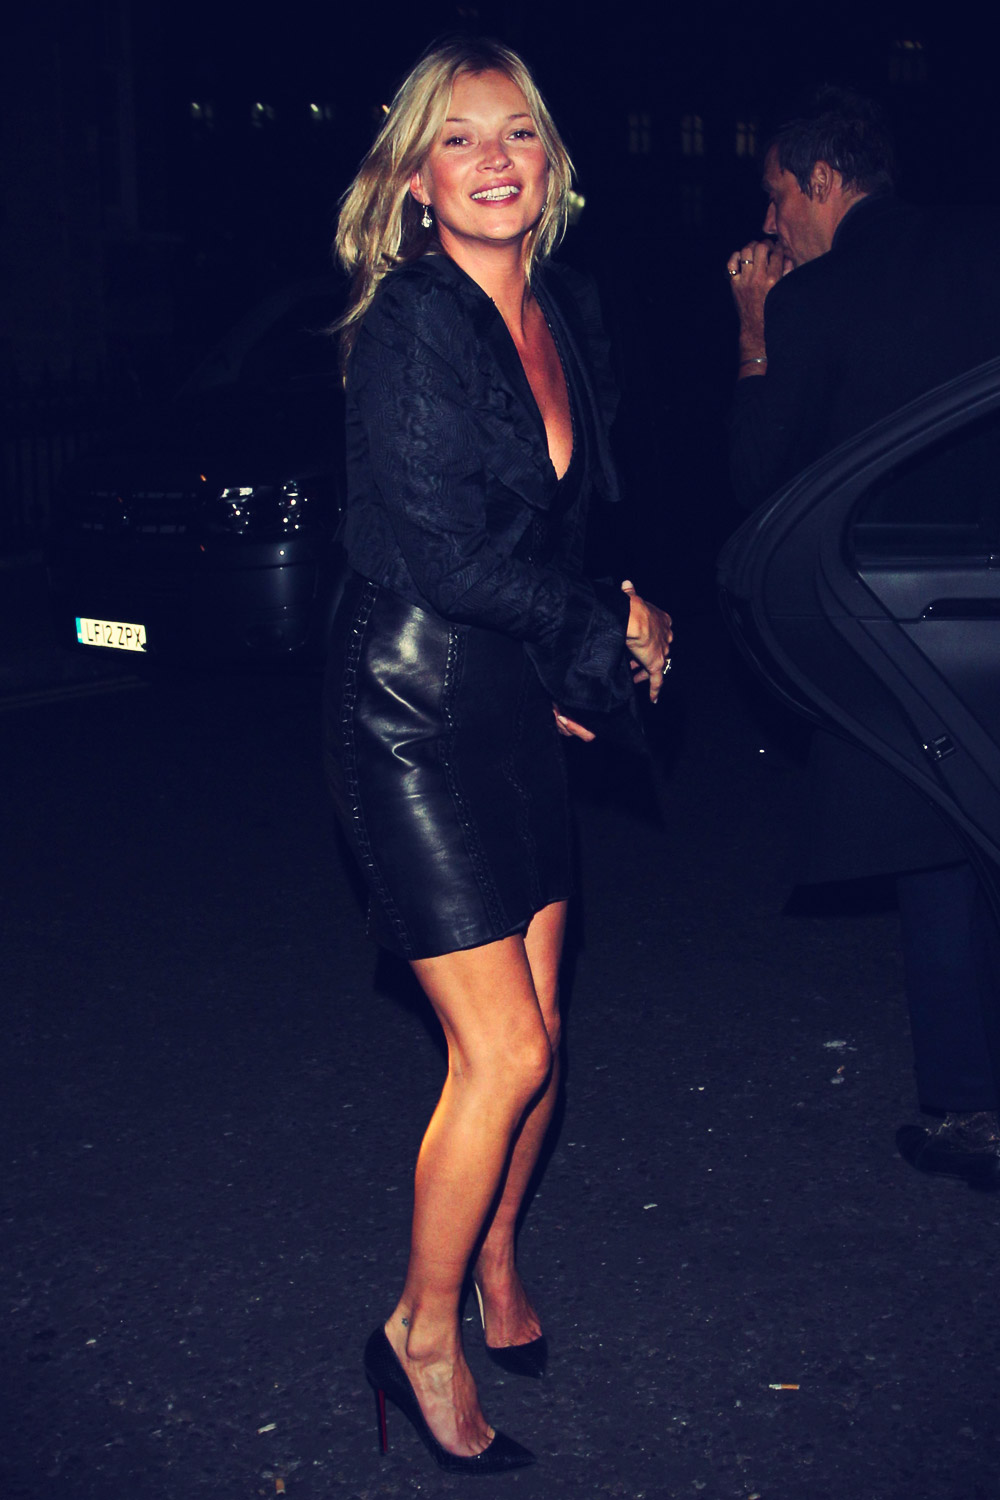 Kate Moss at the Royal Albert Hall